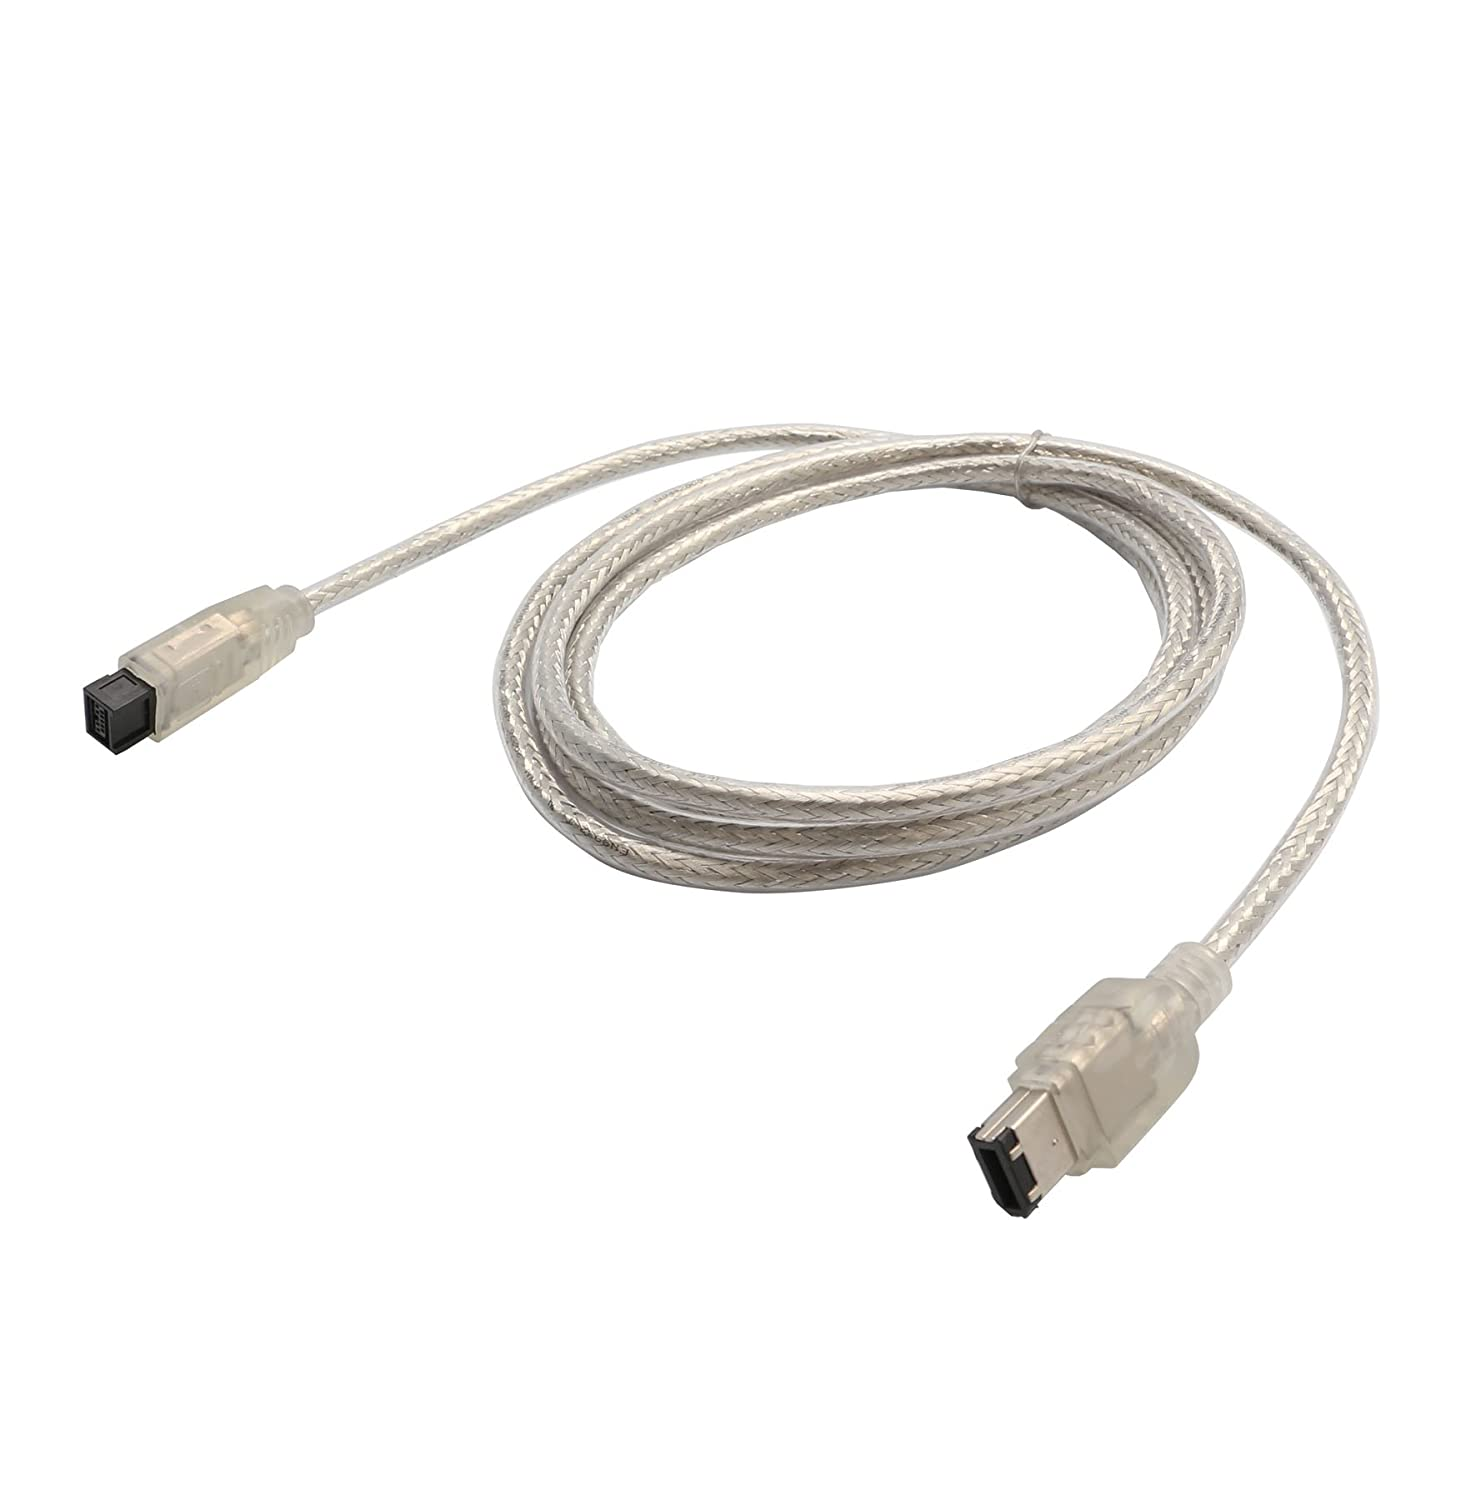 1.8 Meter Syba SY-CAB-F6 FireWire 1394a 6-Pin x 6-Pin Cable